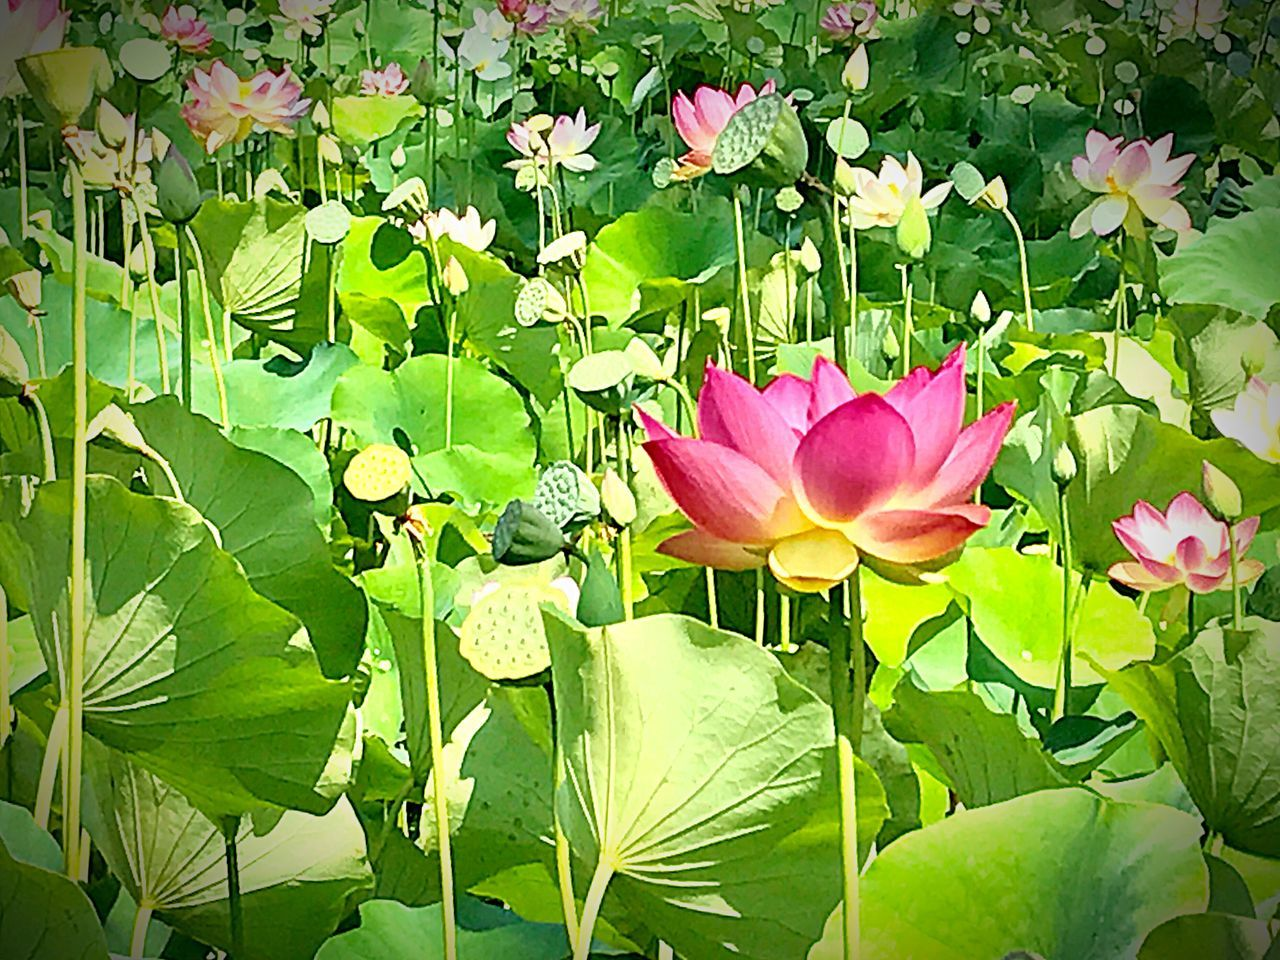 flower, leaf, nature, beauty in nature, petal, freshness, flower head, green color, growth, fragility, lotus water lily, plant, pink color, water lily, outdoors, no people, day, springtime, close-up